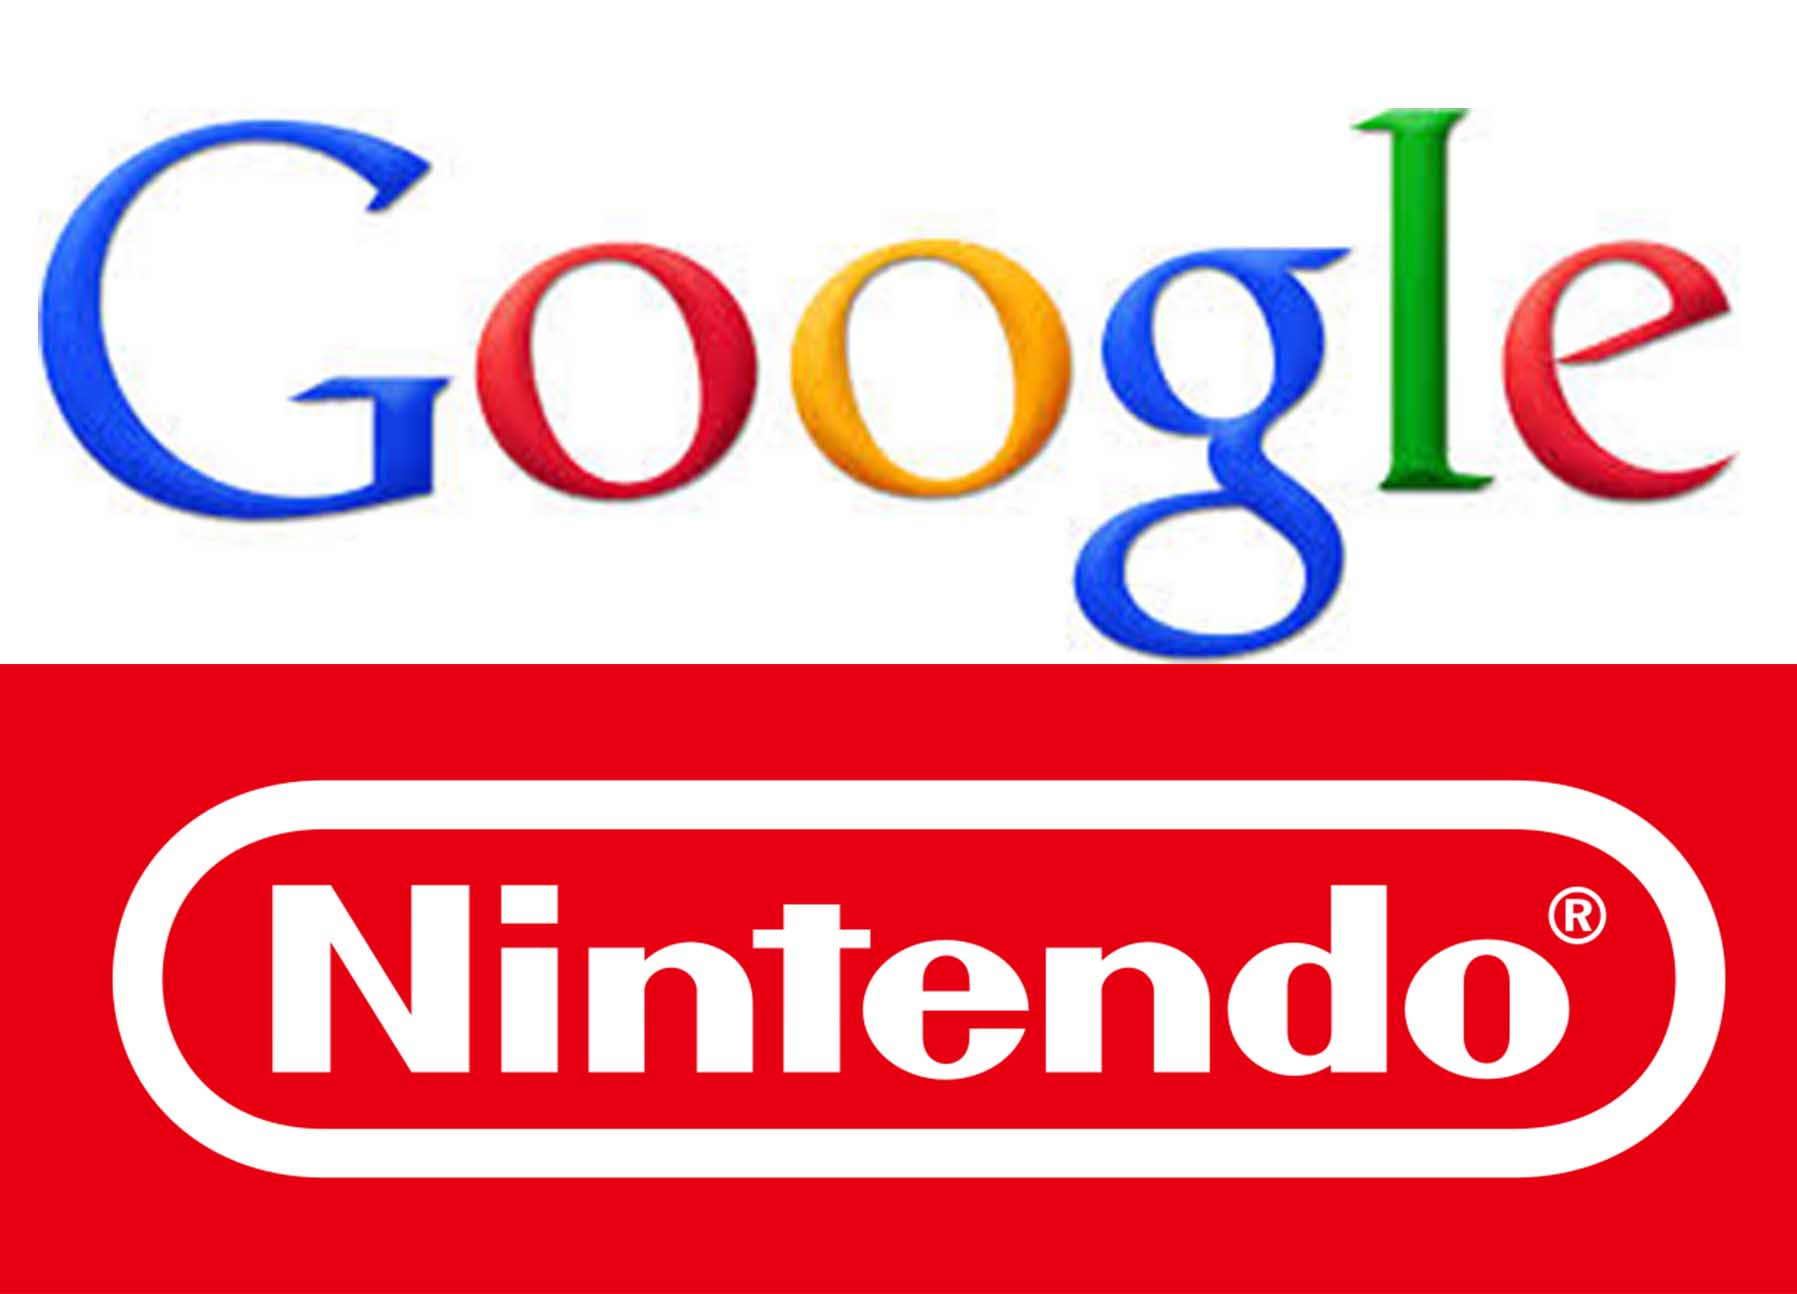 Why Nintendo, Google and others may want to move some manufacturing out of China